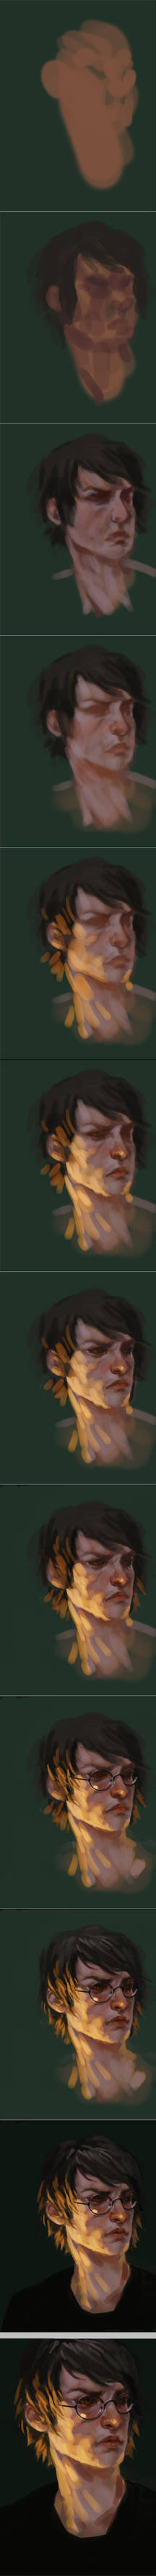 harry portrait process